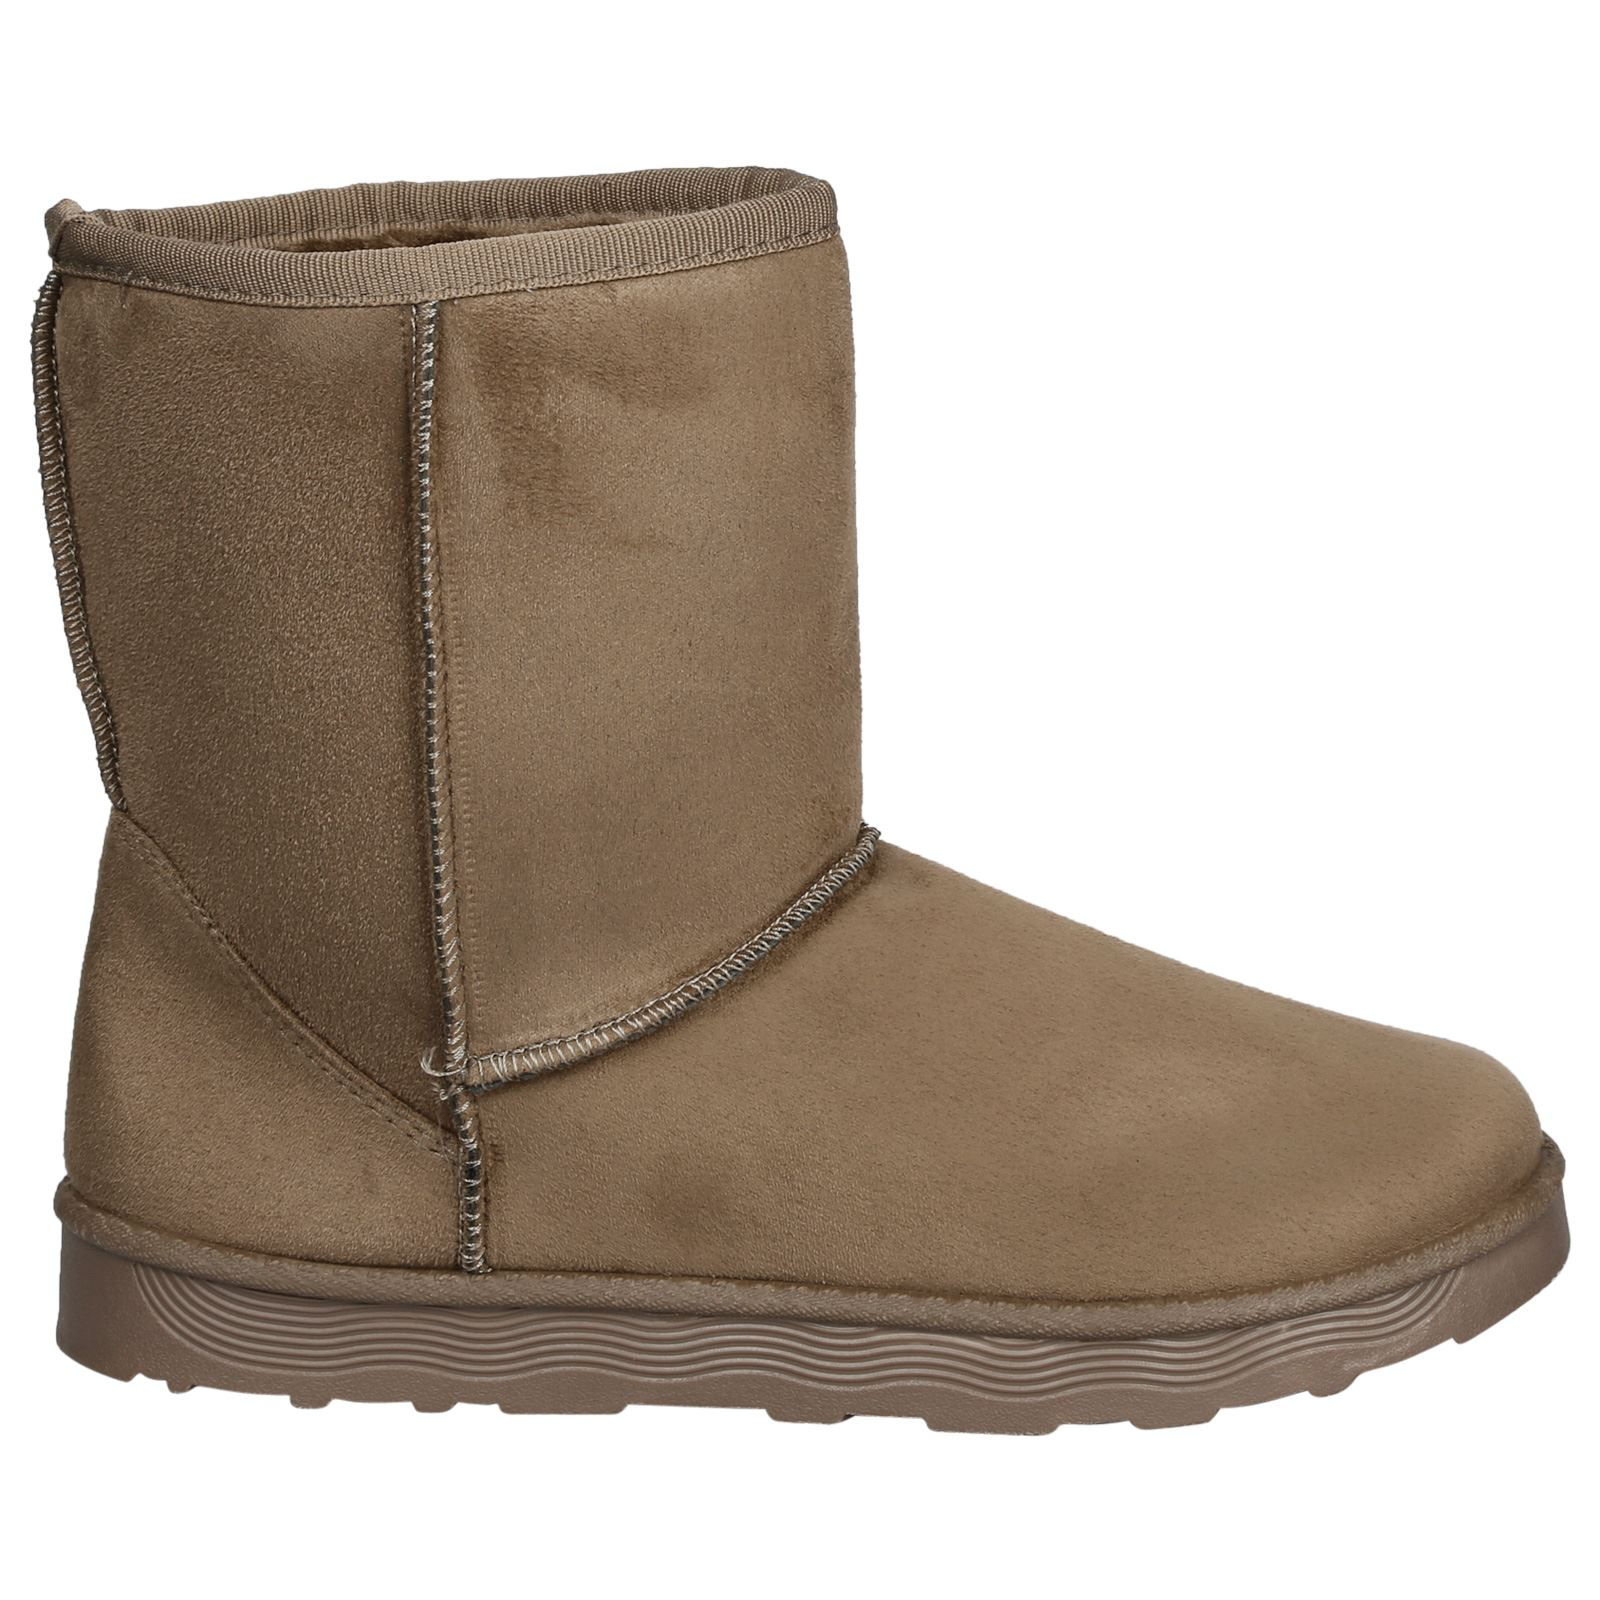 Paisleigh-Womens-Platfrom-Flat-Fur-Lined-Pull-On-Snug-Snow-Boots-Casual-Ladies thumbnail 14